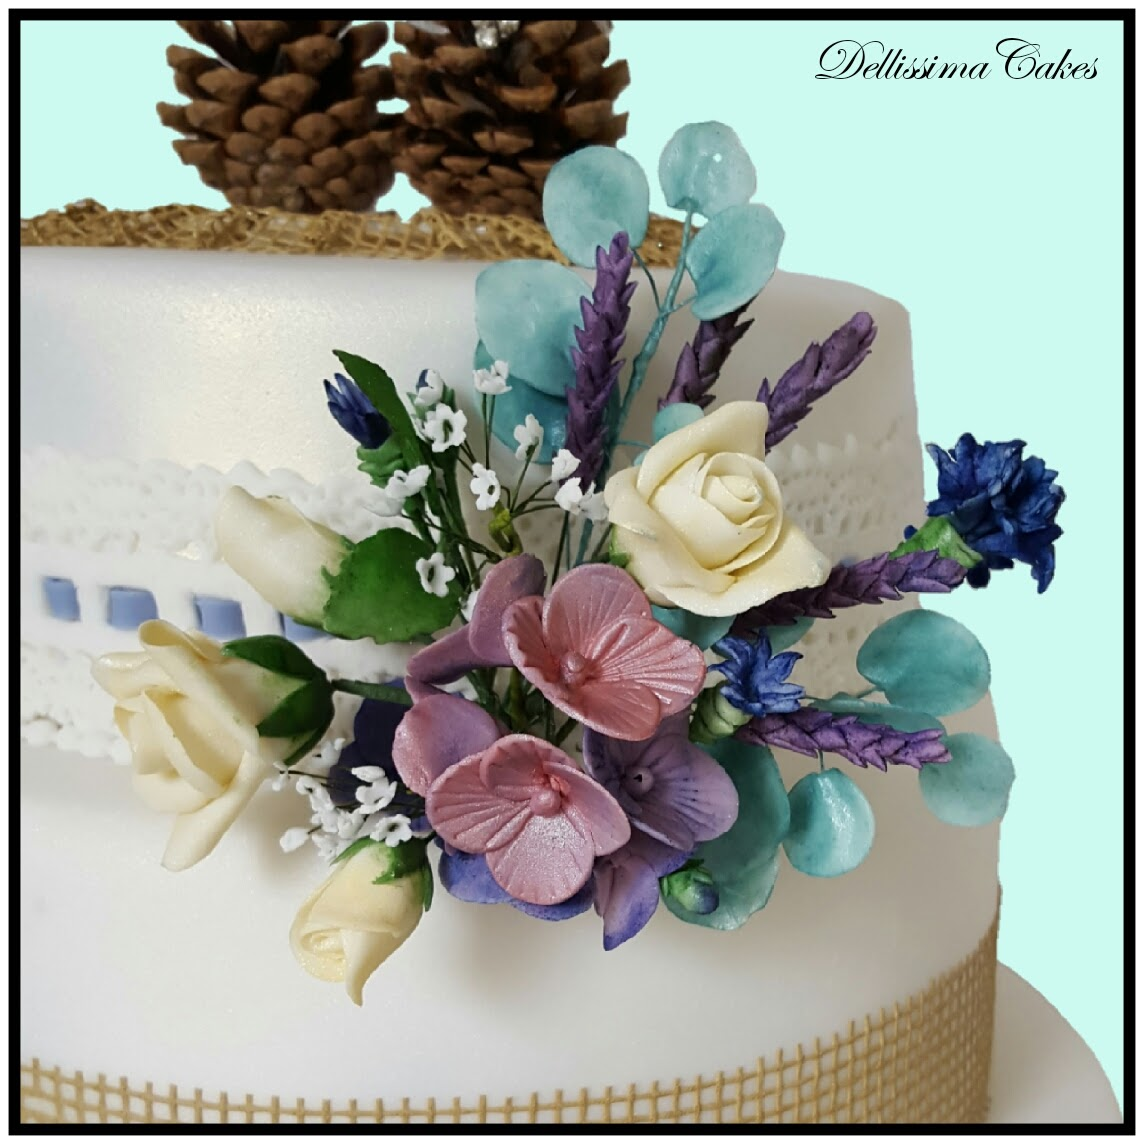 Pinecone Wedding Cake flowers 2.jpg